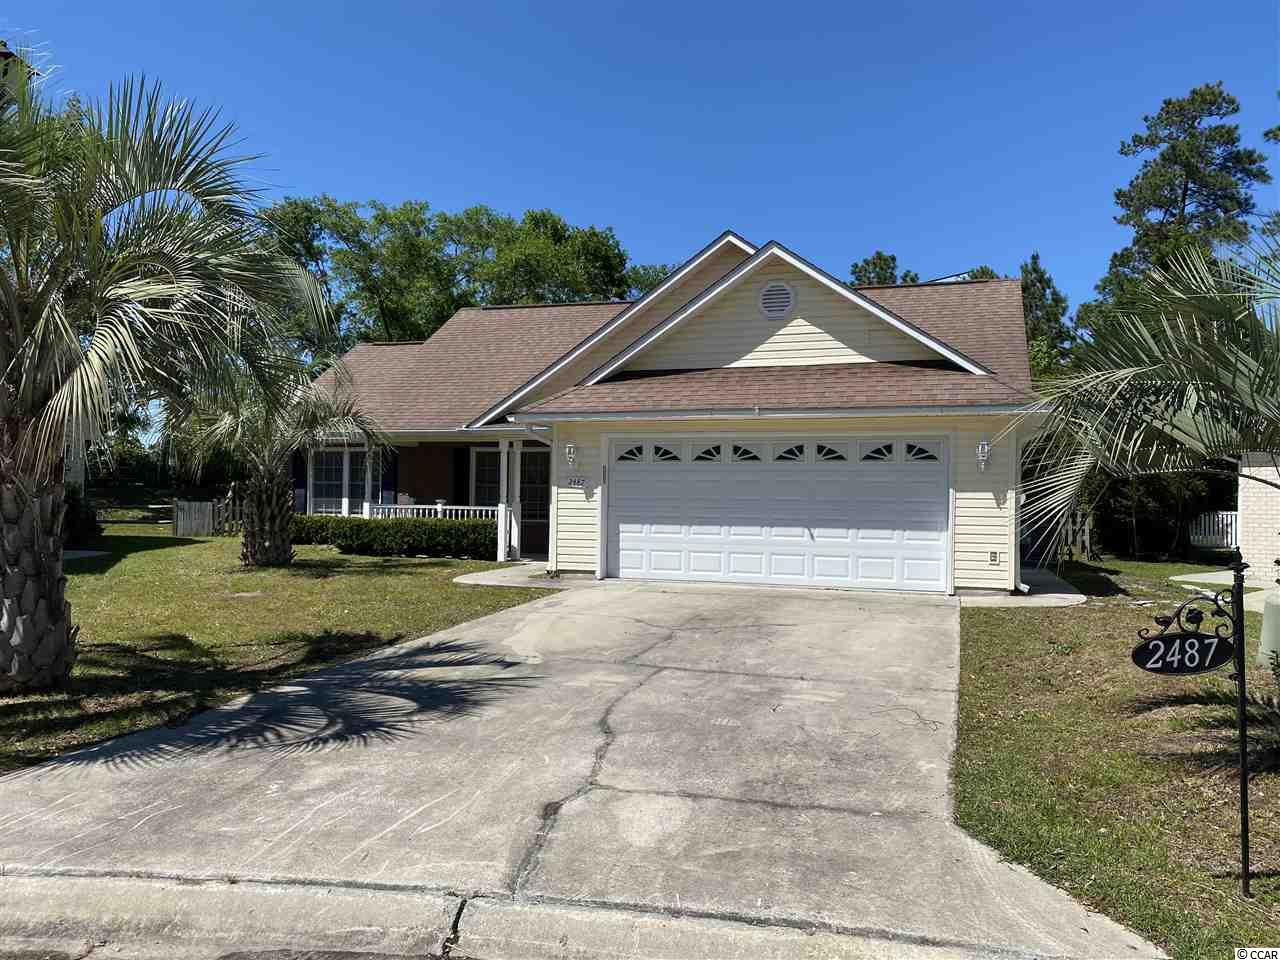 One of the newer homes in Woodlake Village. Has an over sized 2 car garage, large fenced in backyard with covered patio area. This home has a beautiful Carolina Room with long windows and plantation blinds, open floor plan, fireplace and jacuzzi tub. Woodlake Village is an ADULT 55+ community with low HOA that includes pool, tennis court, shuffle board, club house and pond.